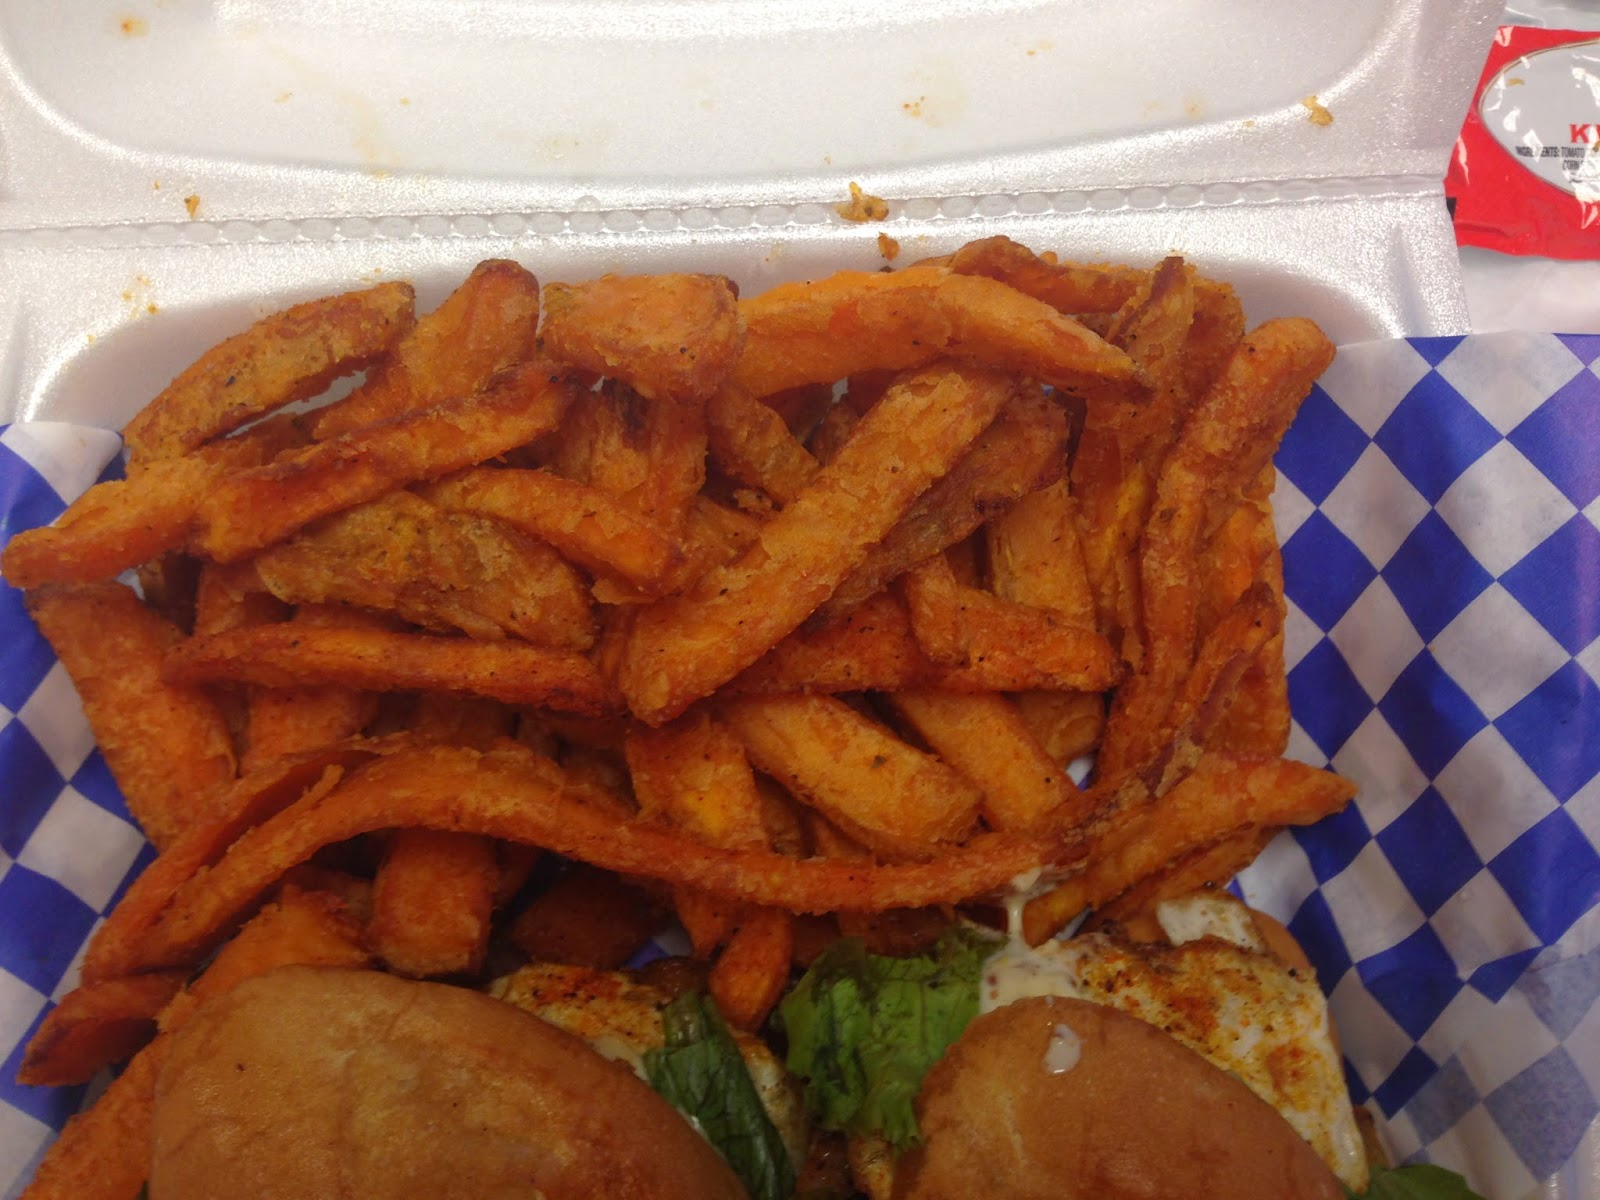 Curbside Sliderz Food Truck, Houston TX Sweet Potato Fries